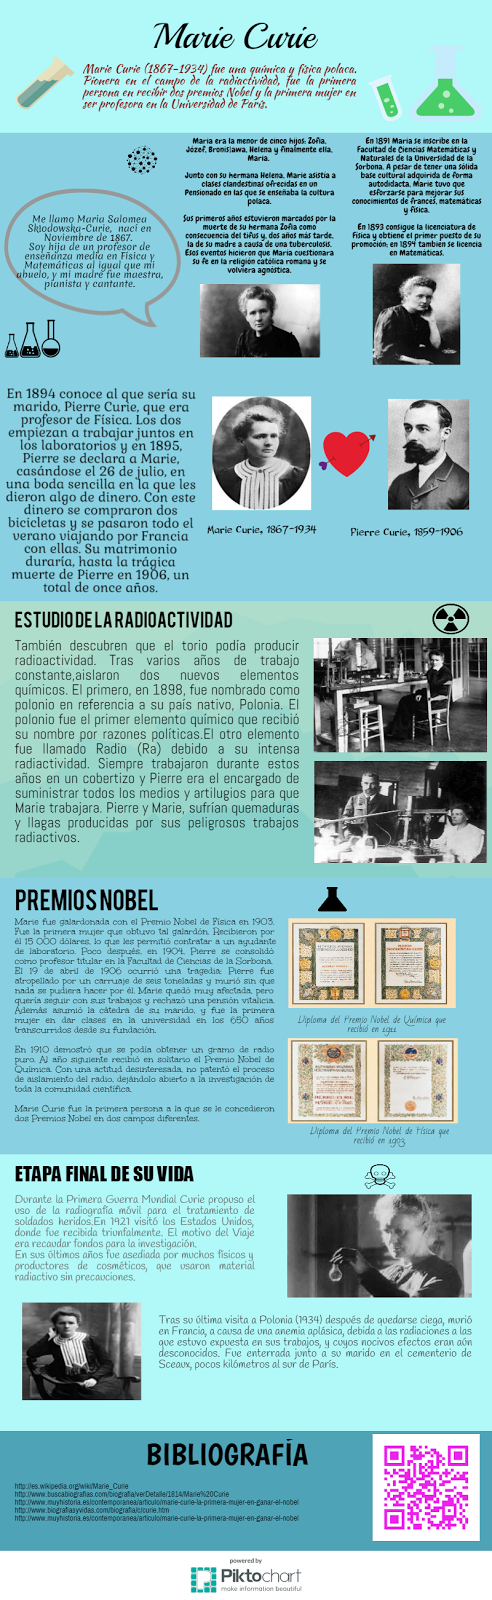 Marie Curie, infografia, infographic, madamme Curie,